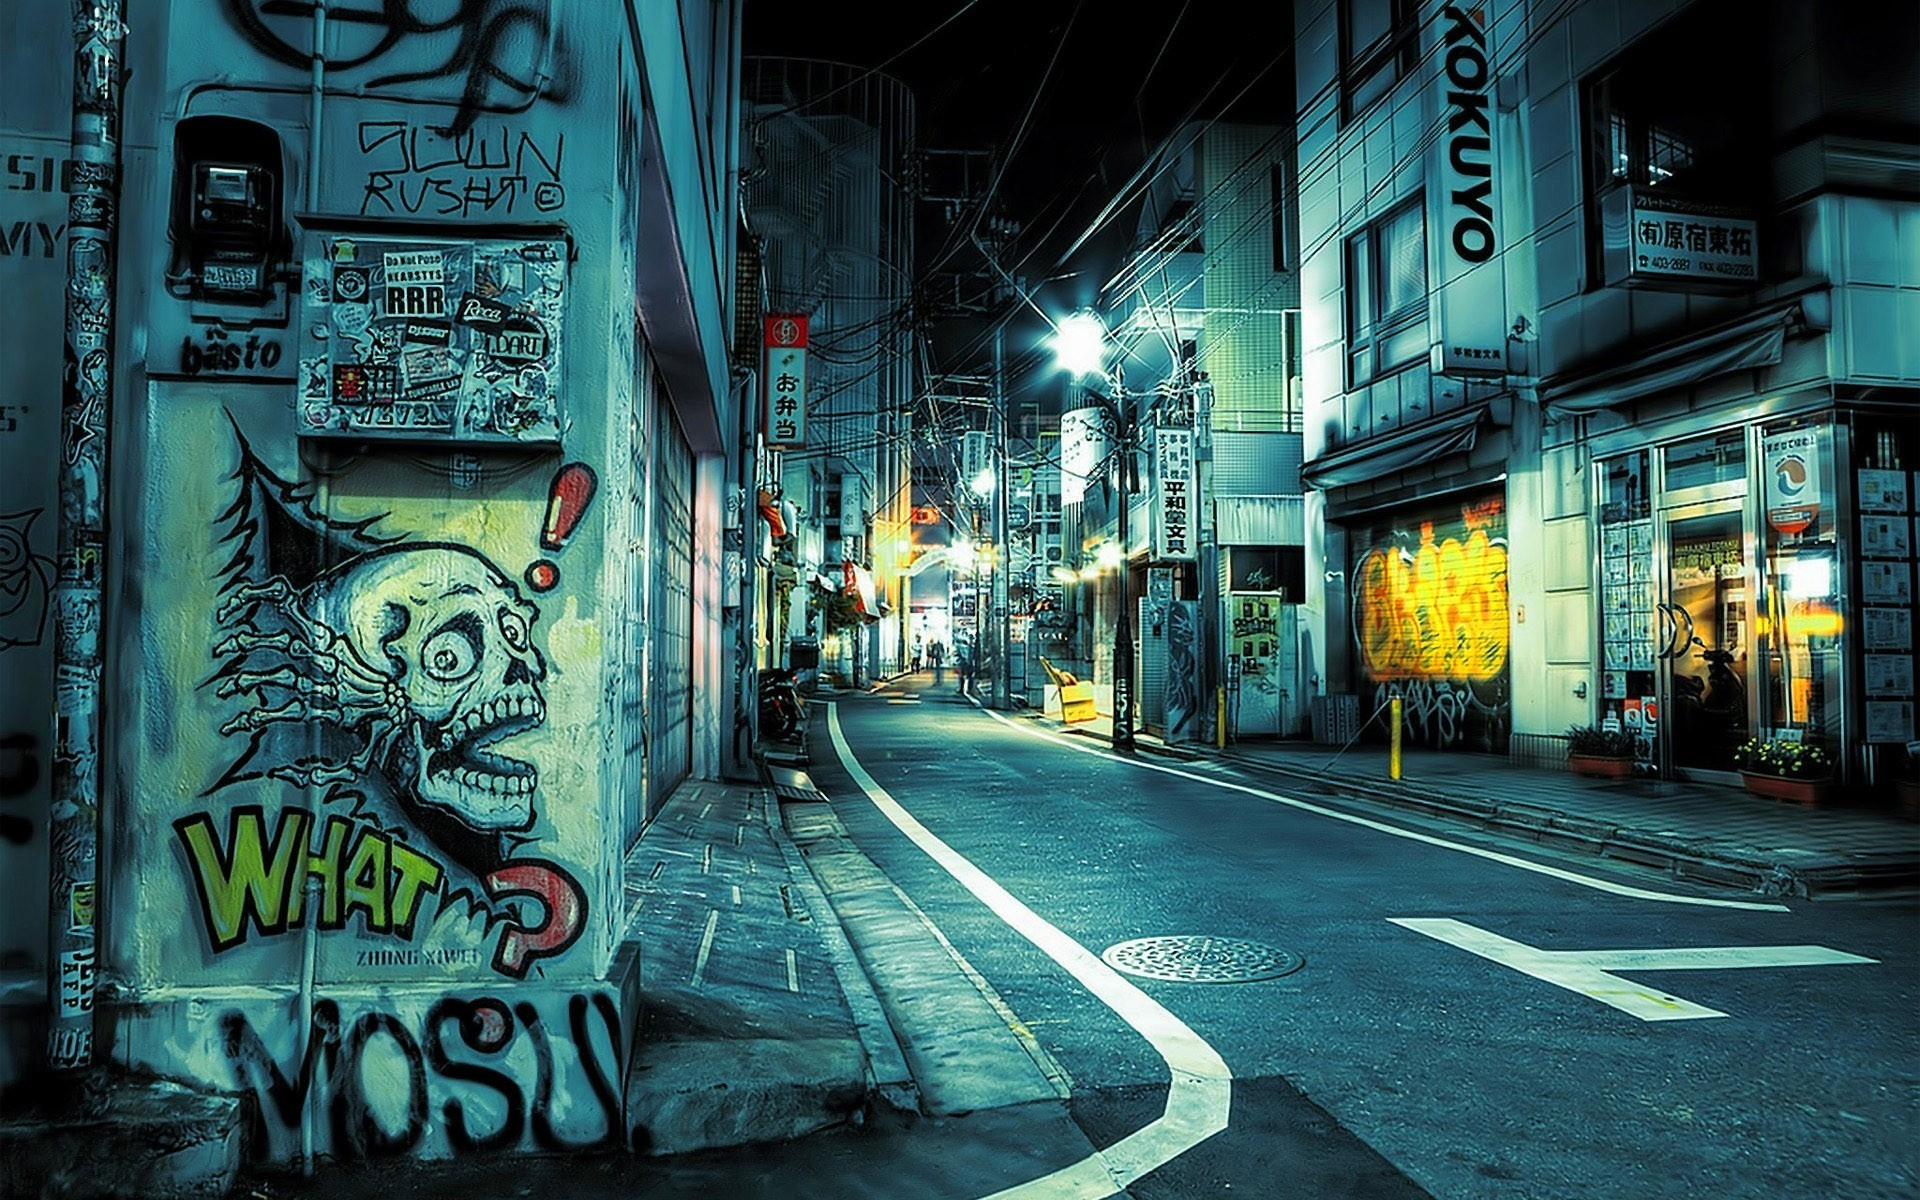 Graffiti wallpapers - Free A17 fonts HD Desktop background images ...